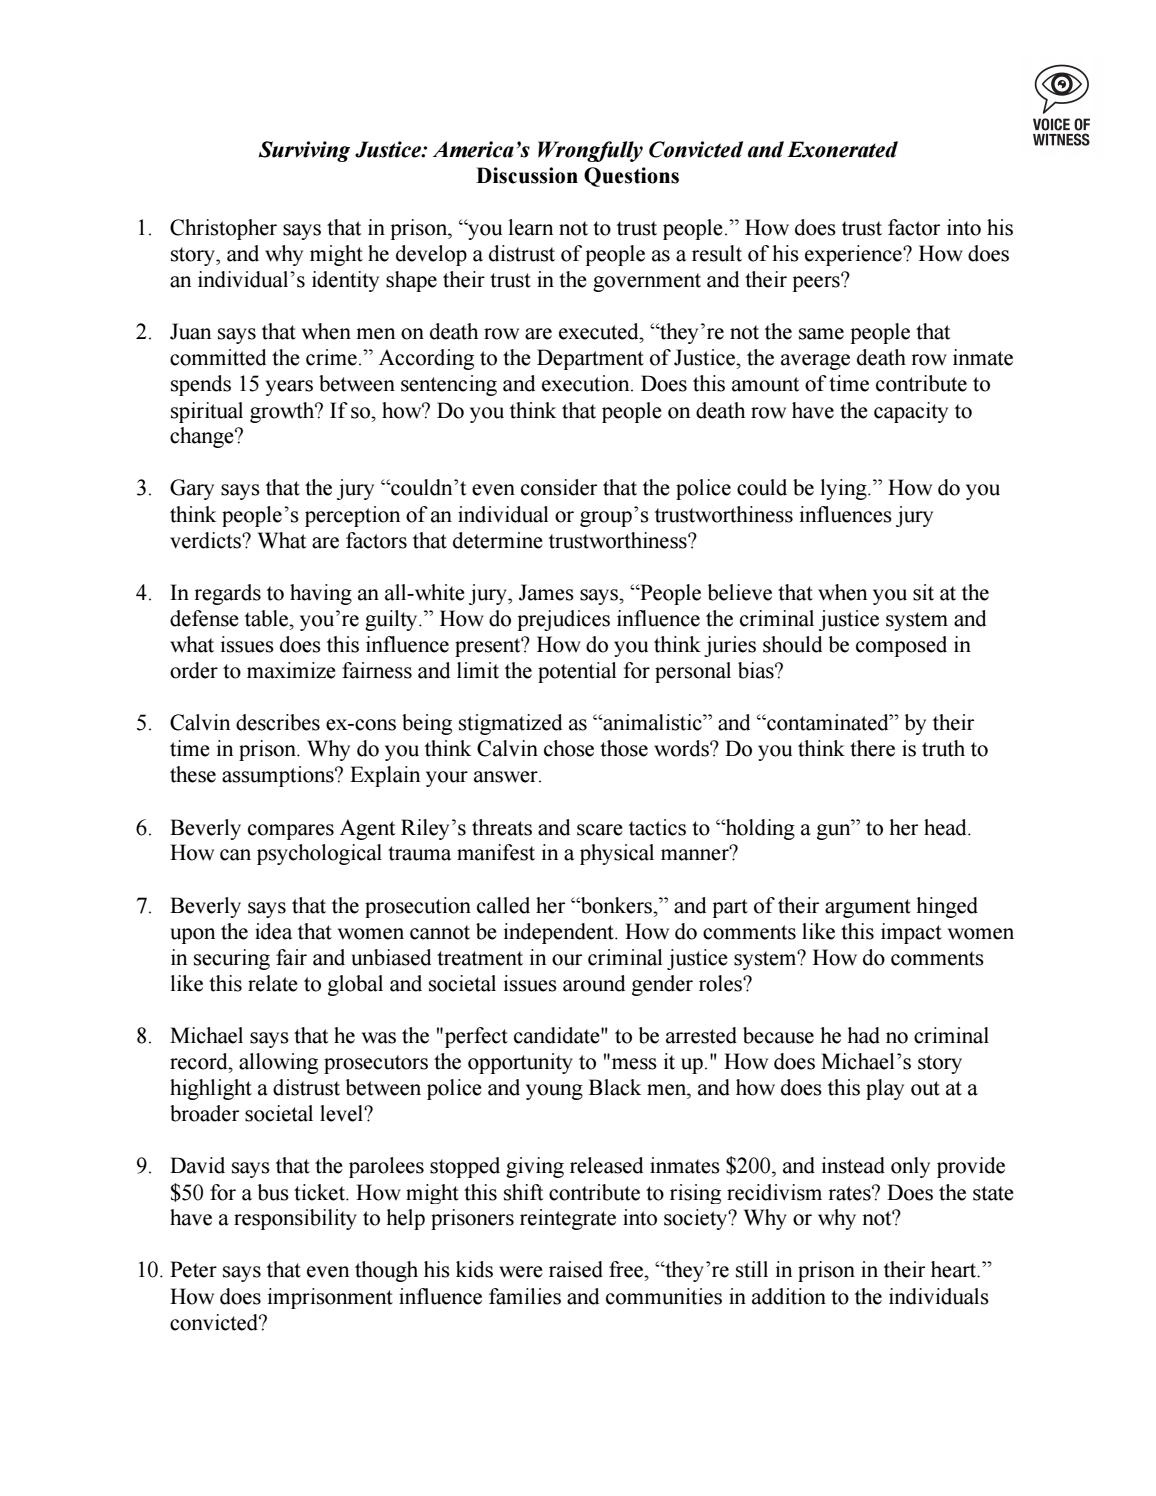 Surviving Justice Discussion Questions by Voice of Witness - issuu